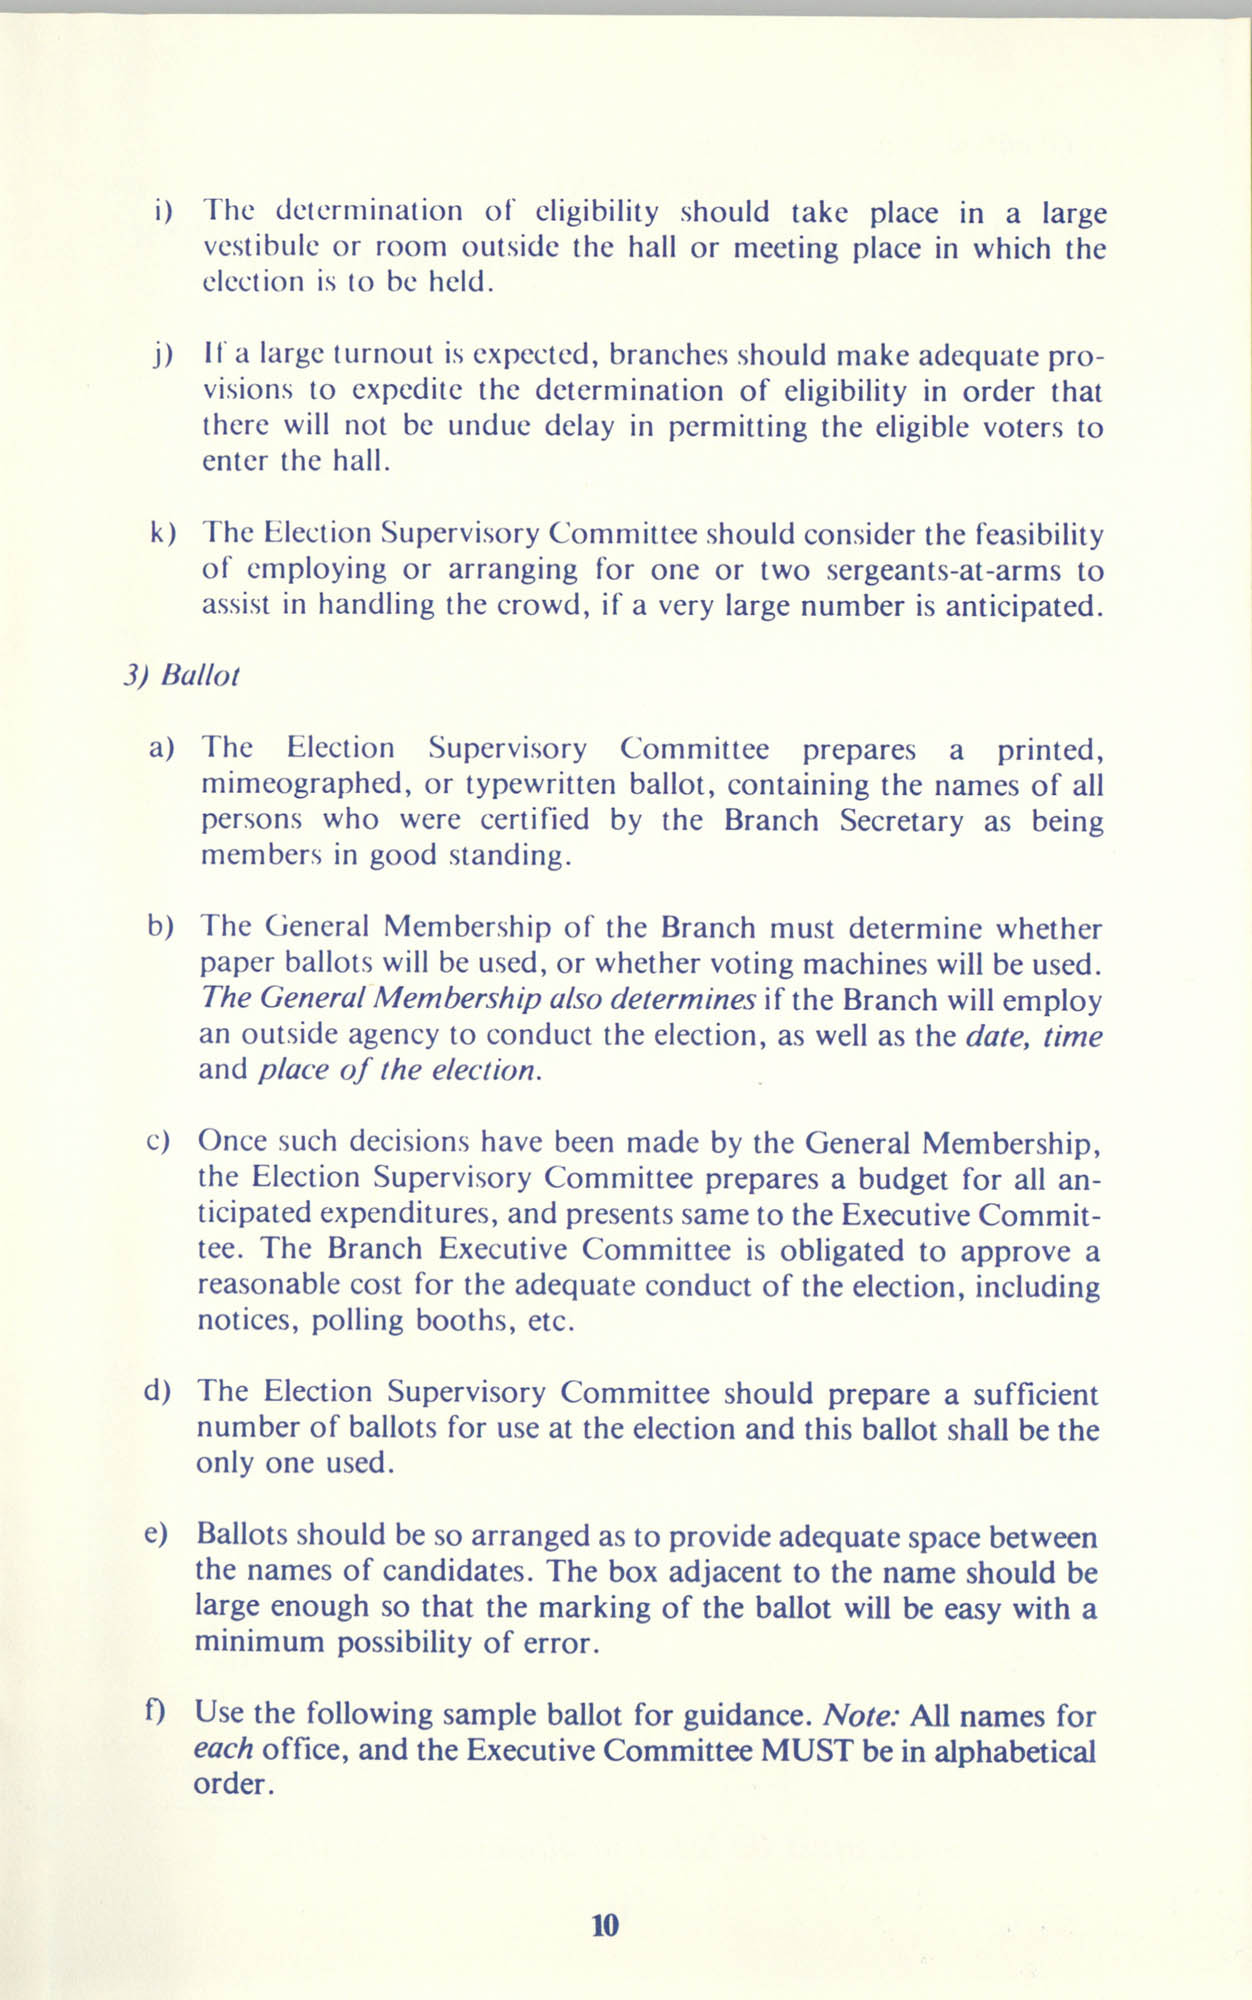 Manual on Branch Election Procedure, Page 10